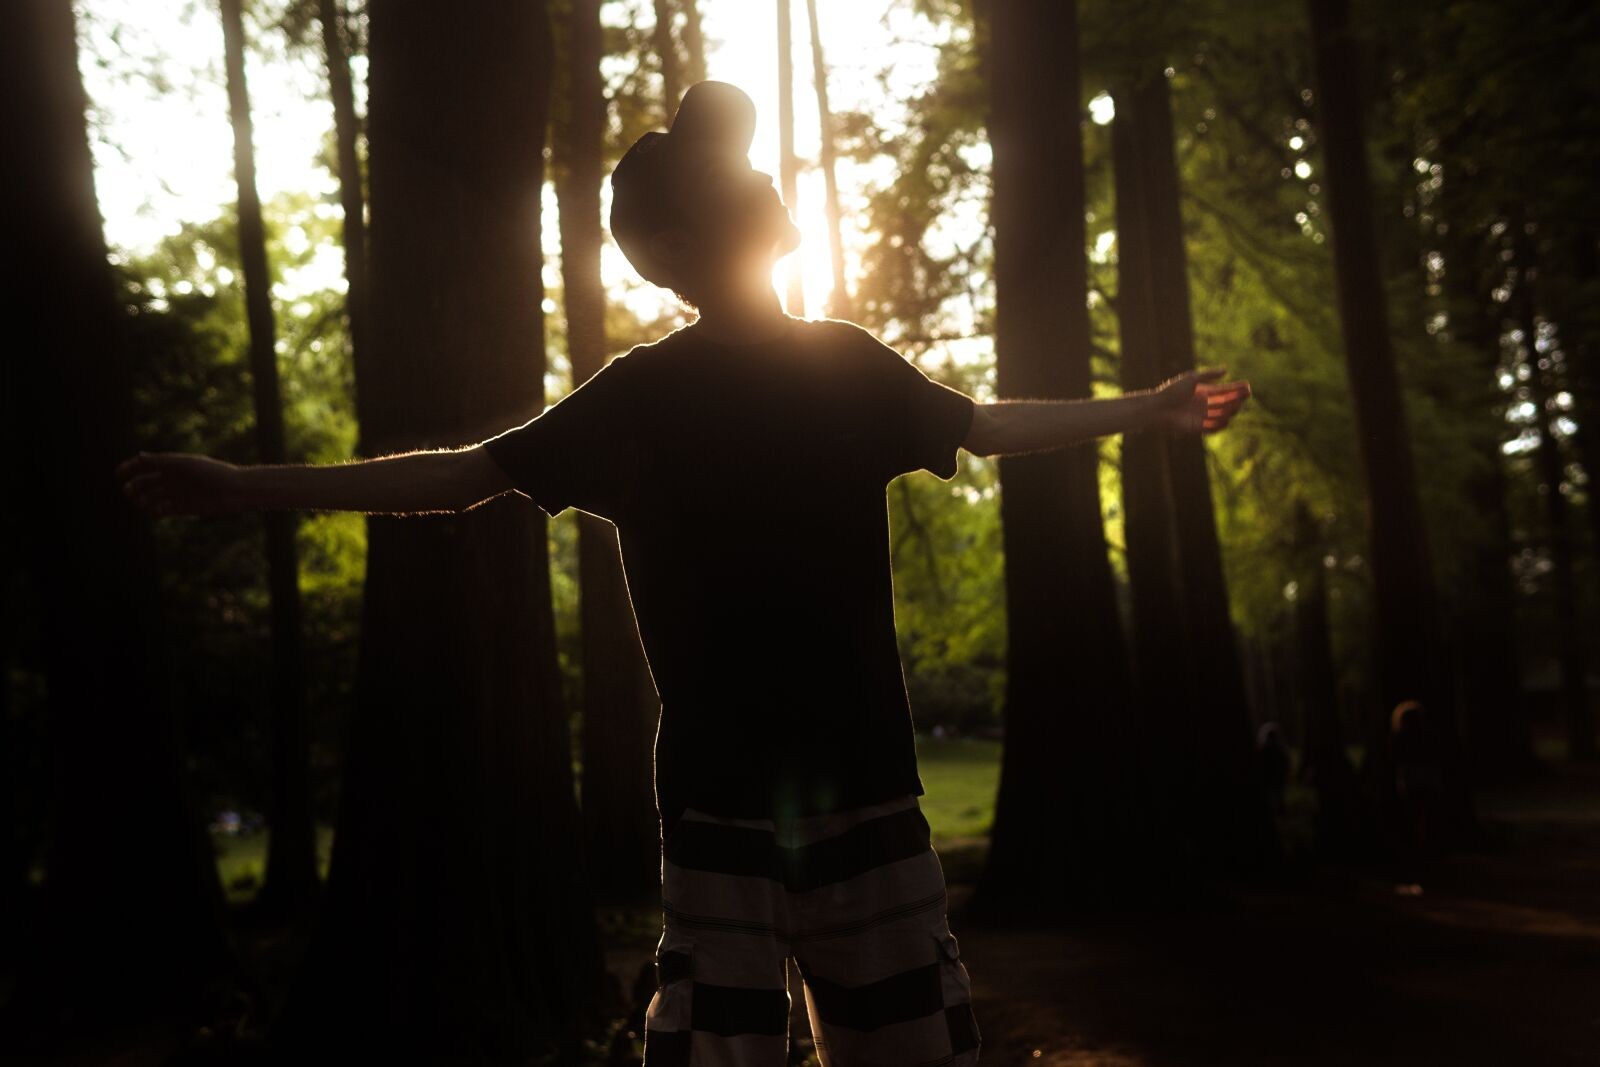 """Sony a6300 sample photo. """"Man, freedom, forest"""" photography"""